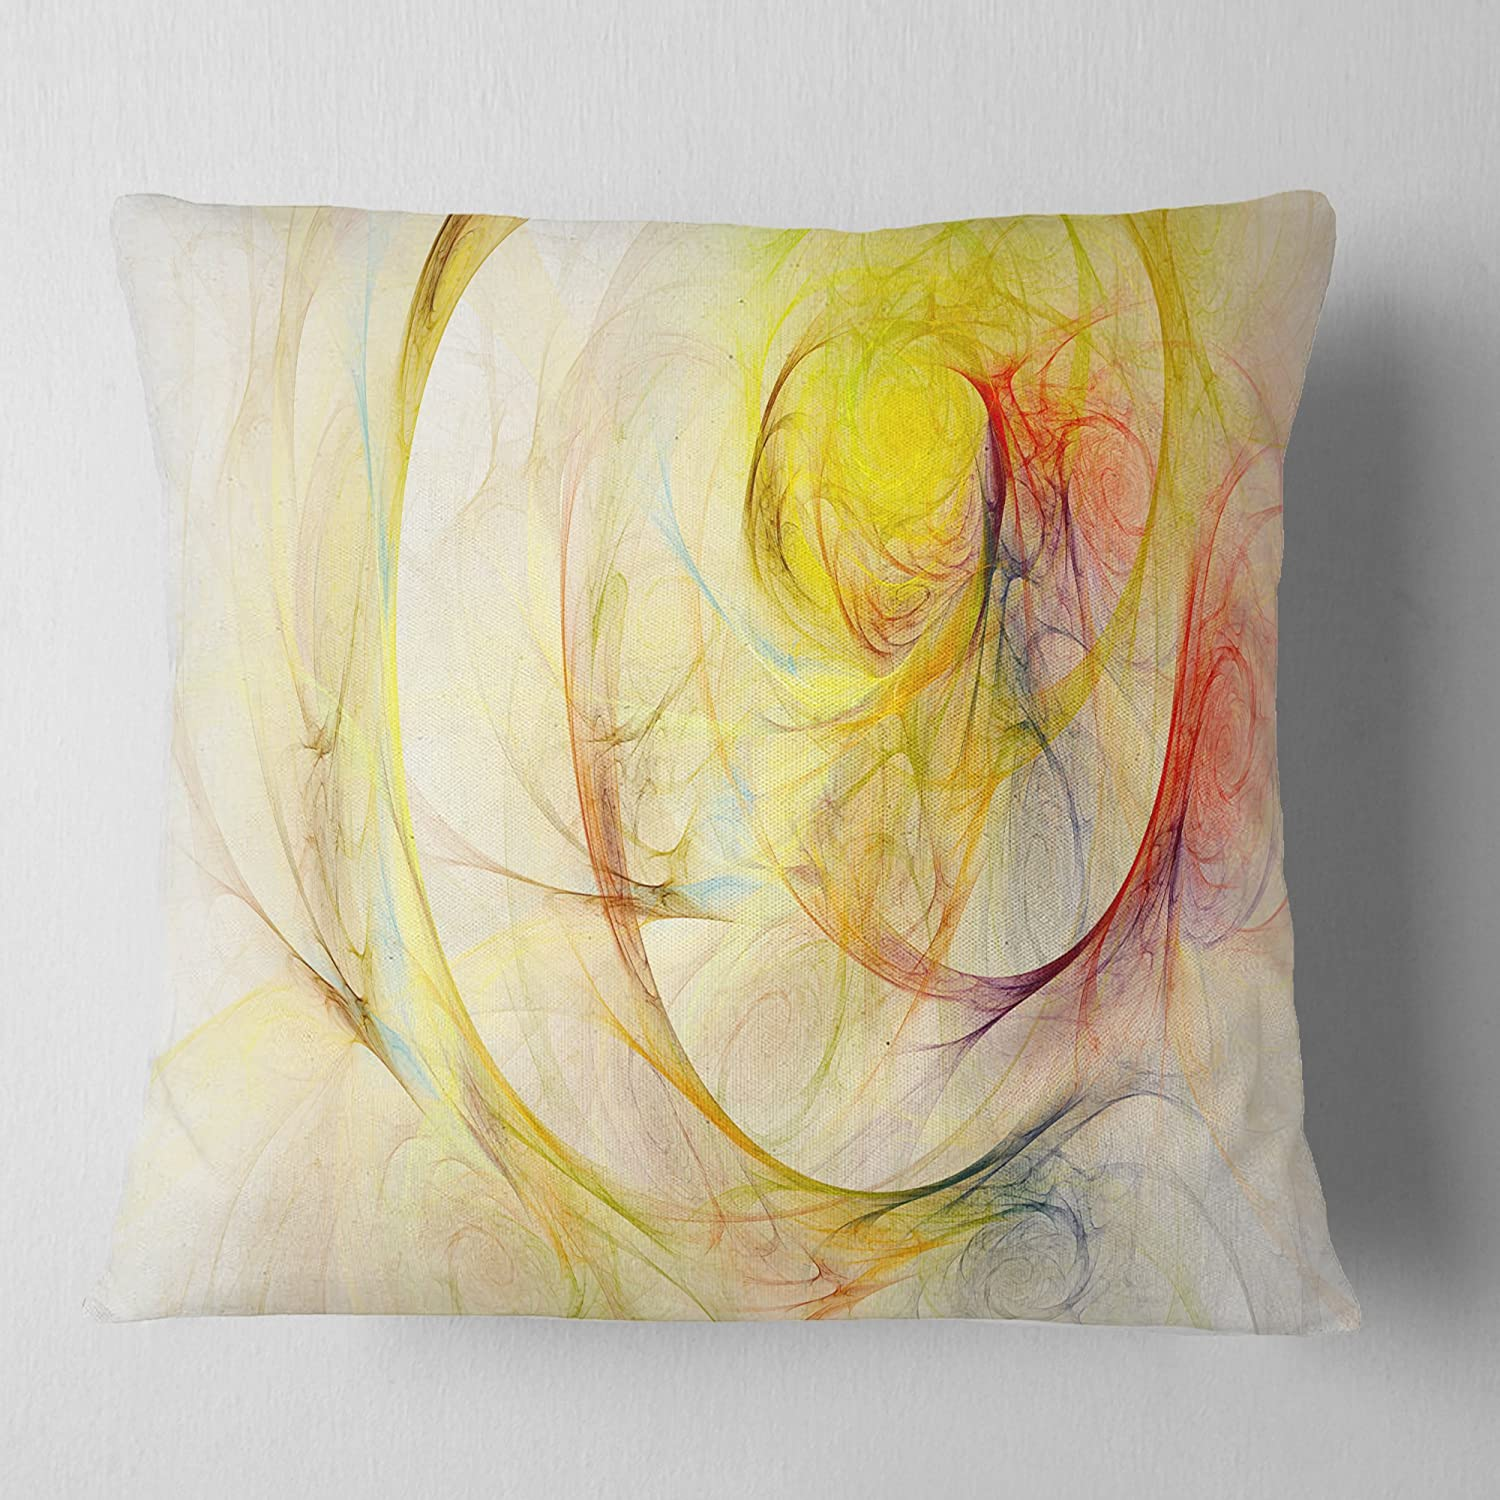 Designart Cu7699 18 18 Yellow Storm Sky Abstract Cushion Cover For Living Room Sofa Throw Pillow